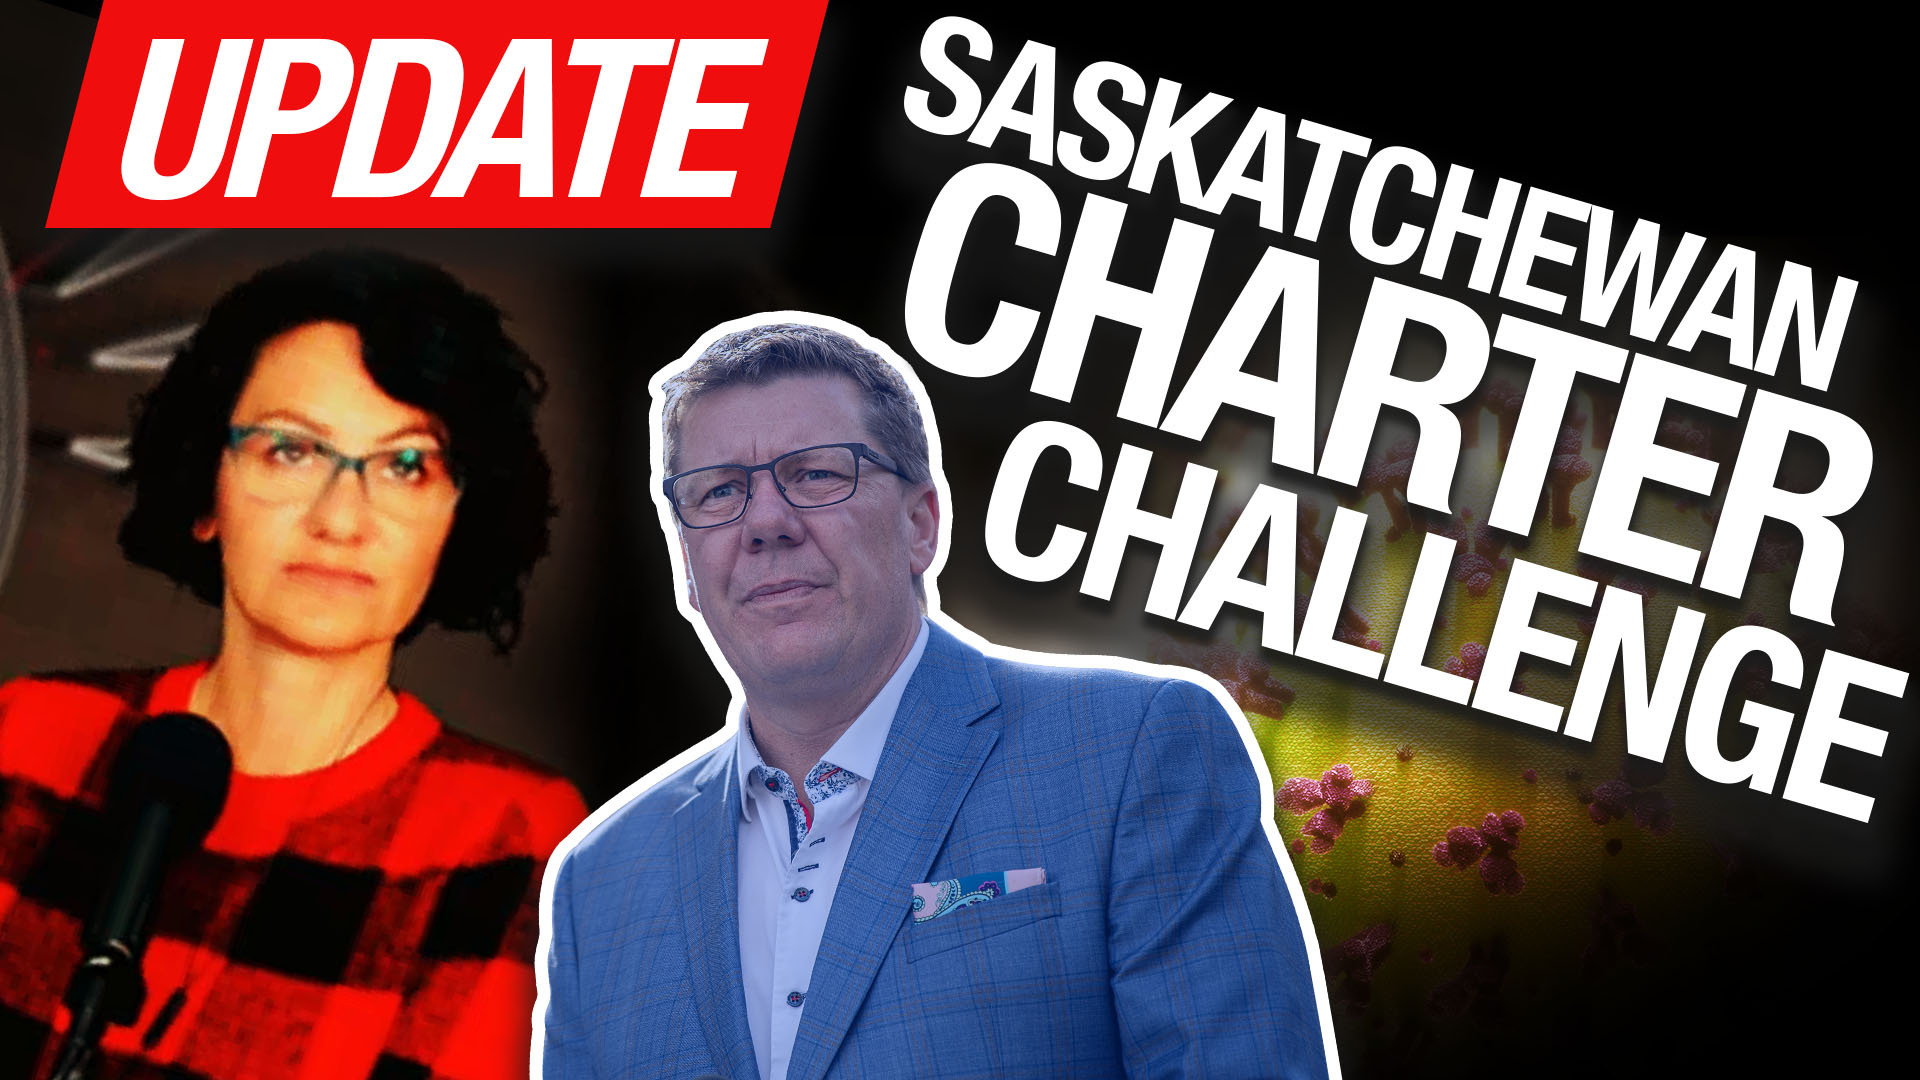 Help us lift the lockdown in Saskatchewan! We're suing for a breach of Charter rights